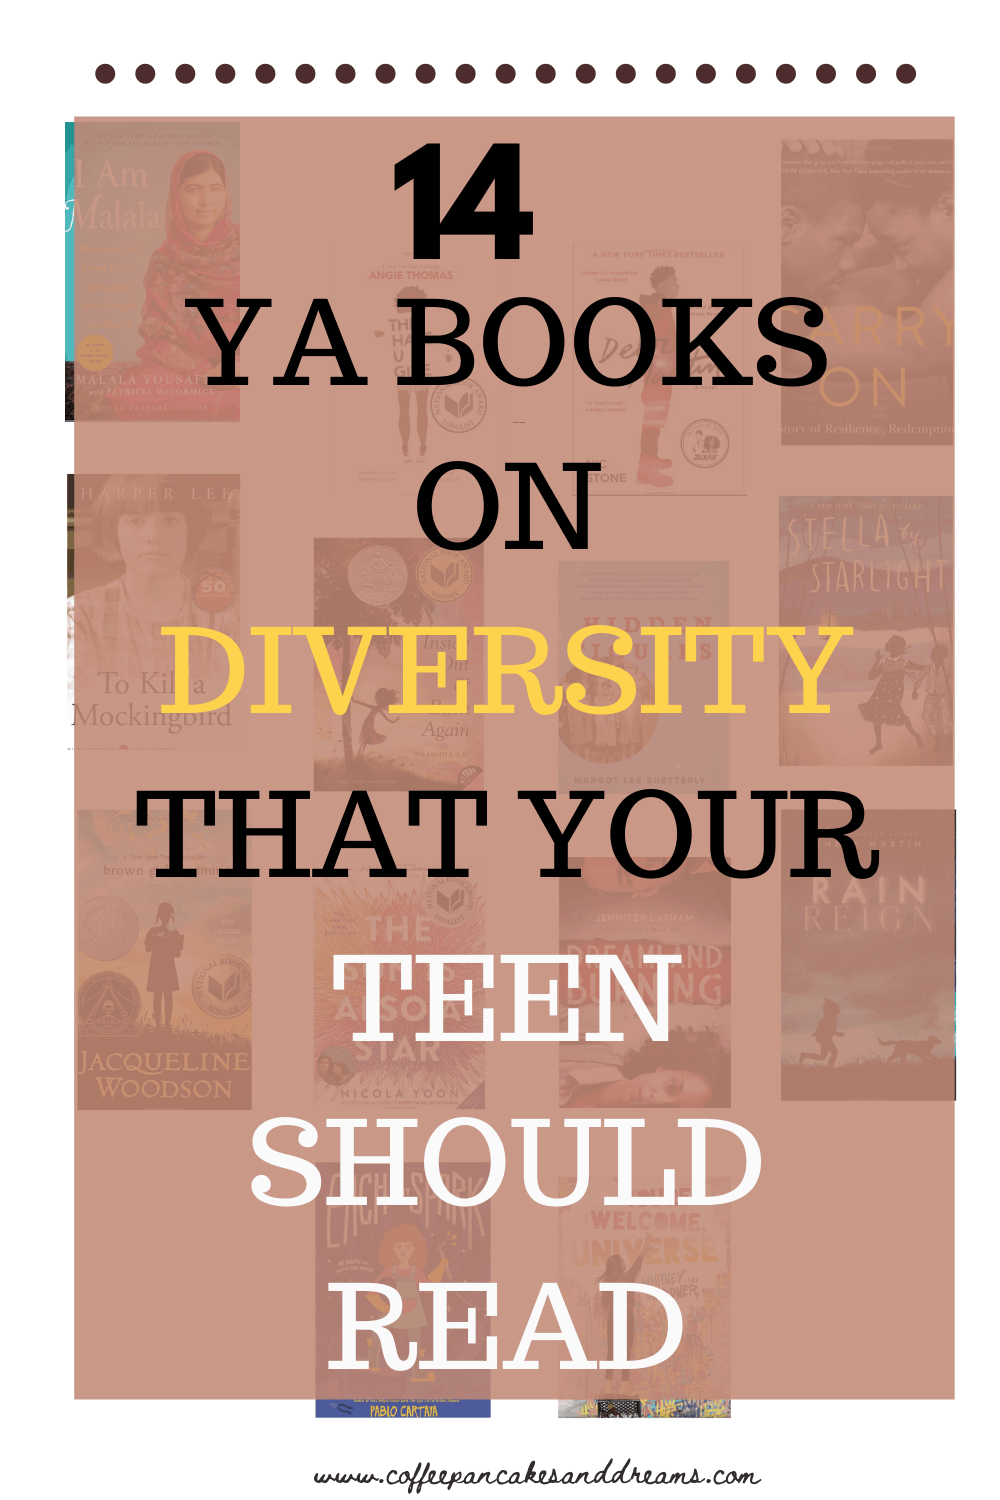 Young Adult Books on Diversity #ya #middleschool #teenlit